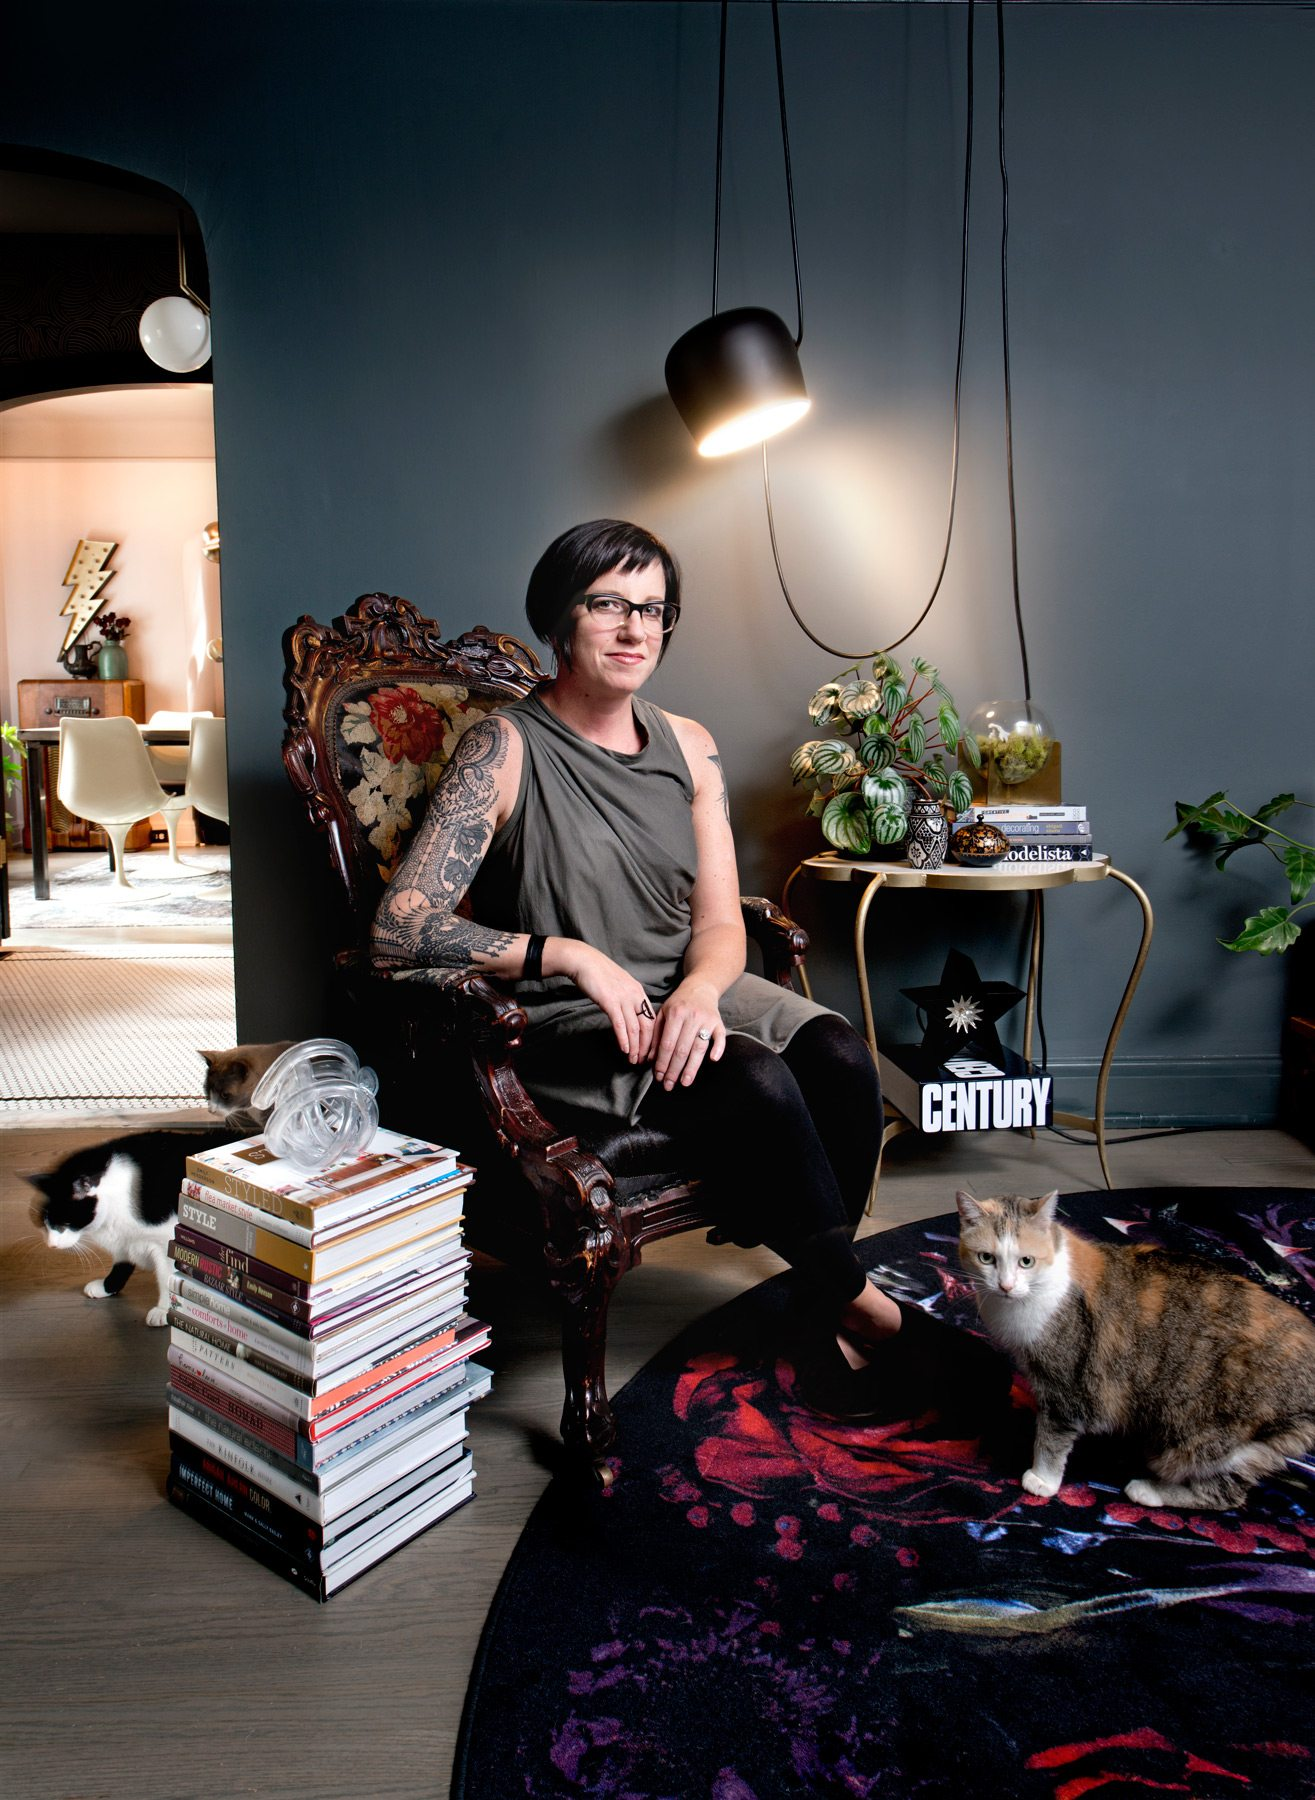 Kim poses with one of the resident felines in the living room, where a stack of hardcover design books serves as a side table. The pendant light above her head is by FLOS. Photography: Marc Fowler / Metropolis Studio